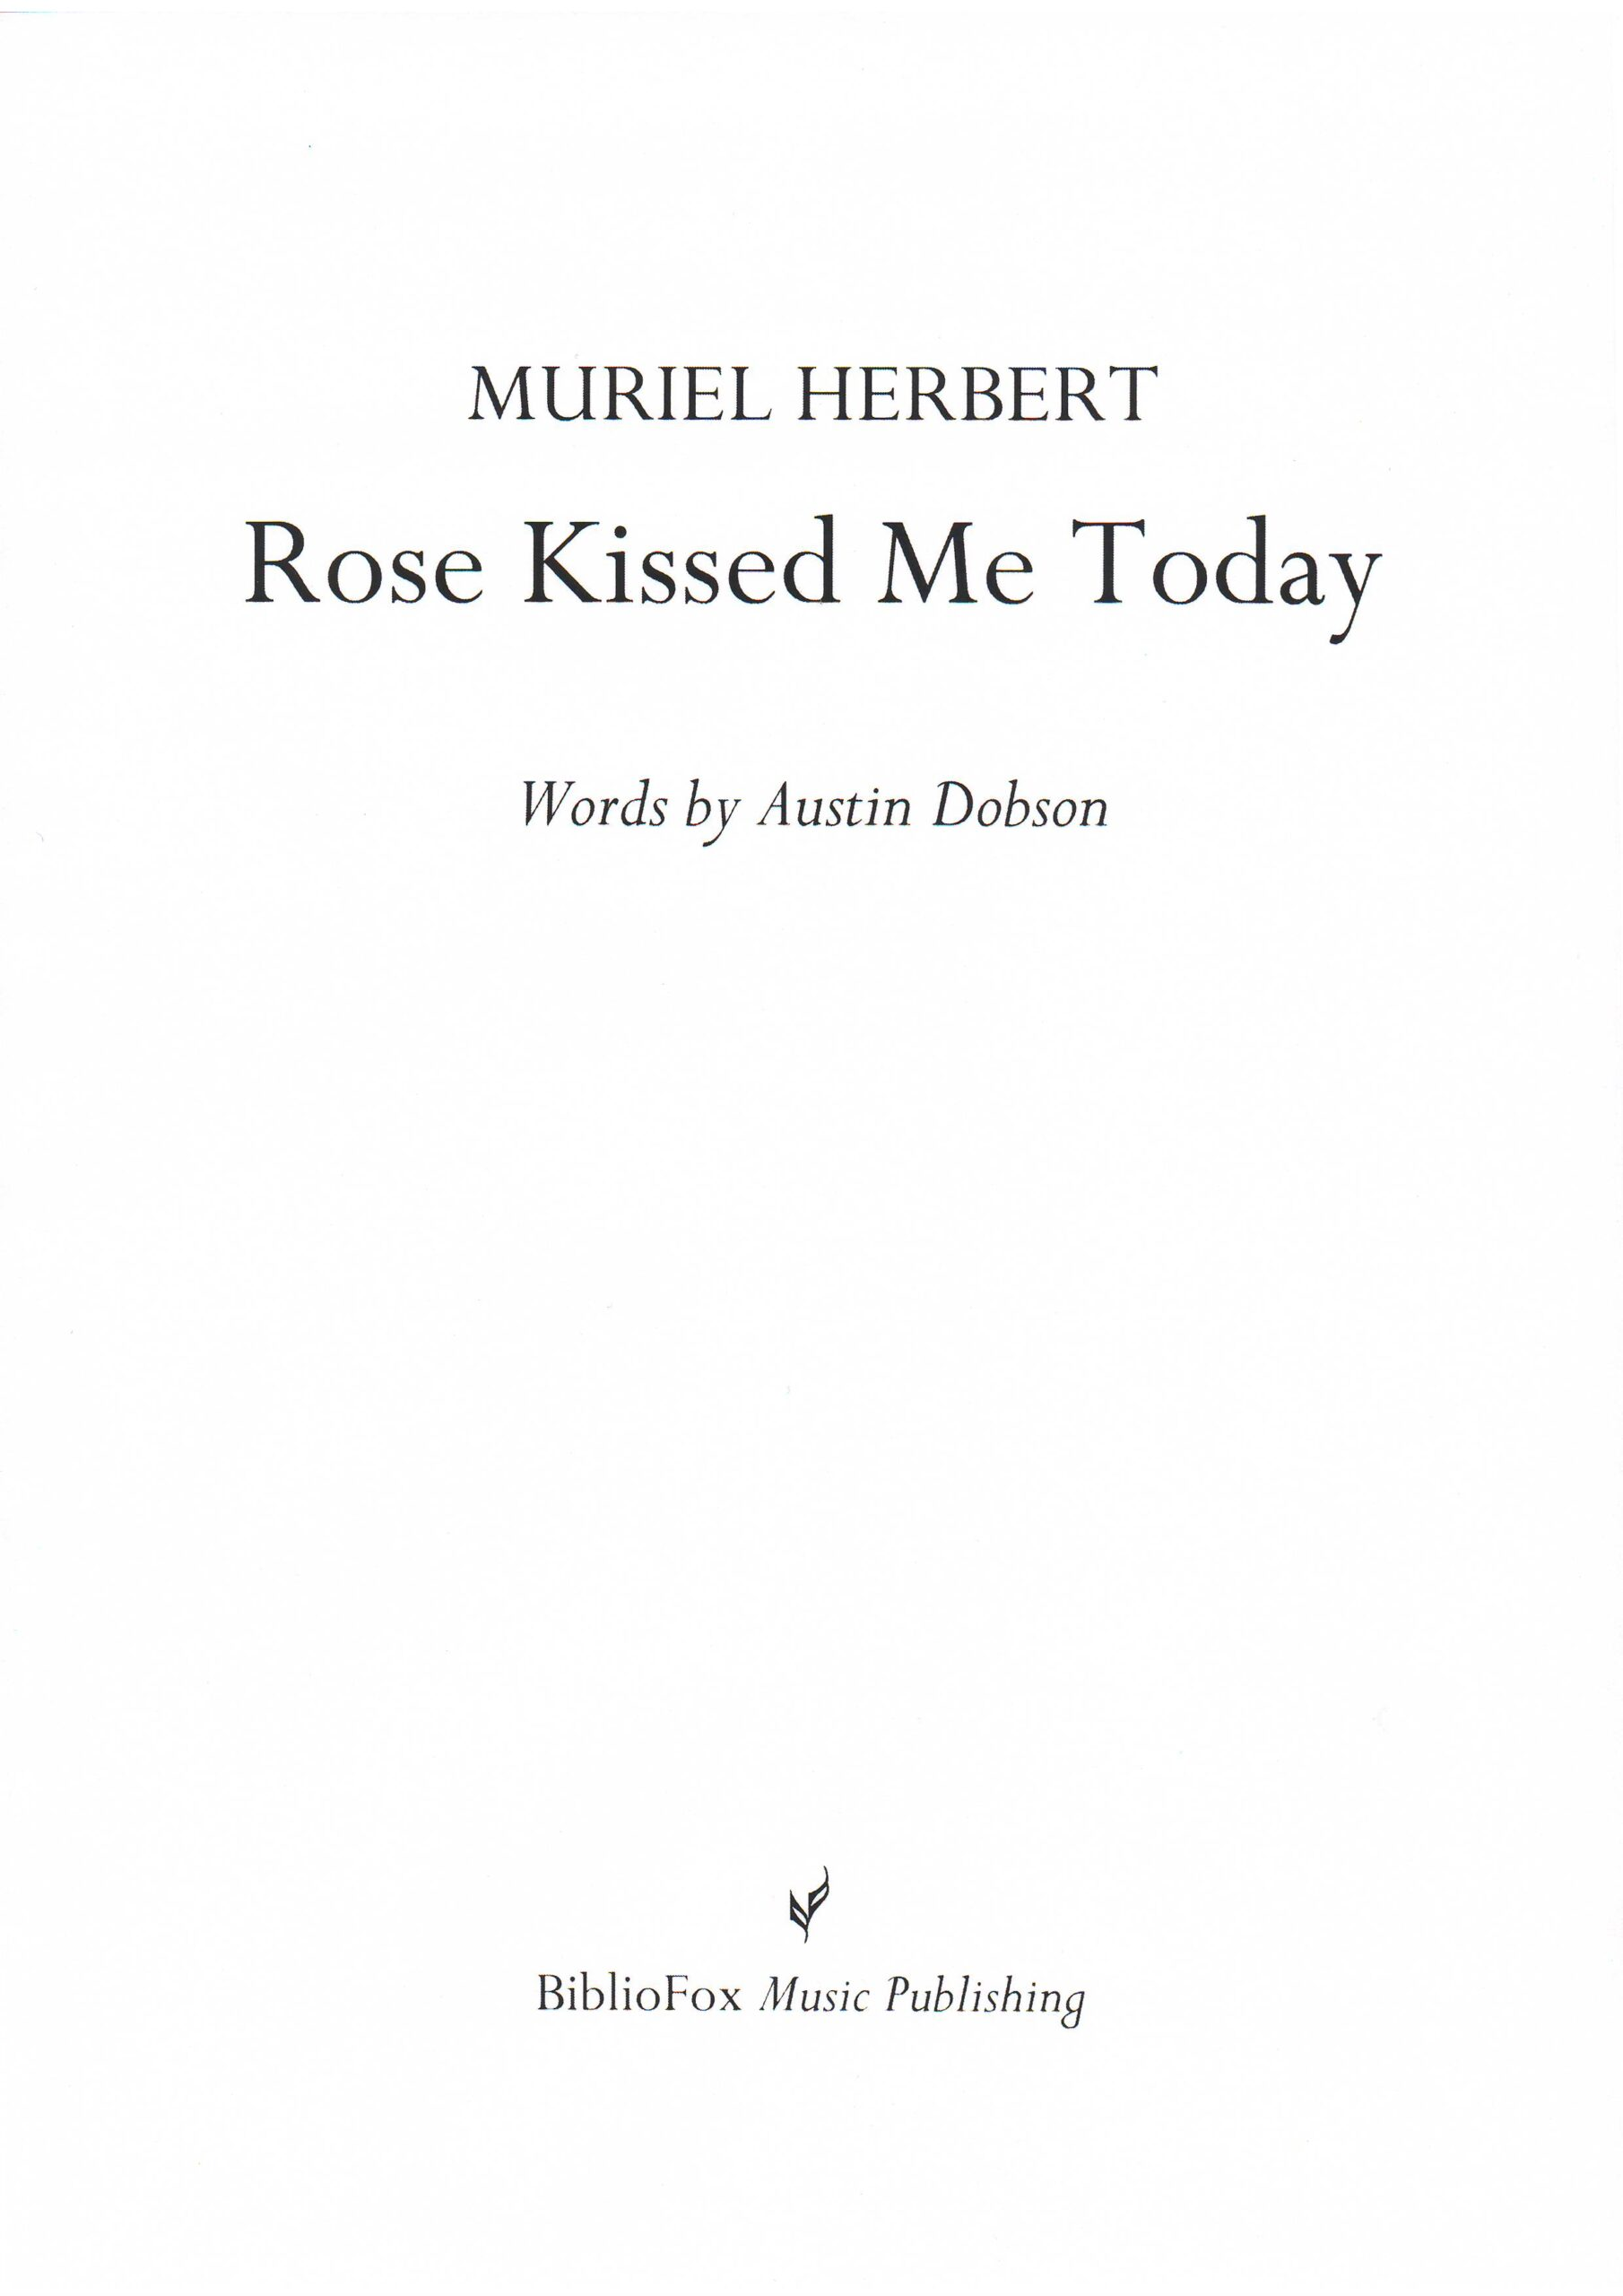 Cover page of Herbert Rose Kissed Me Today